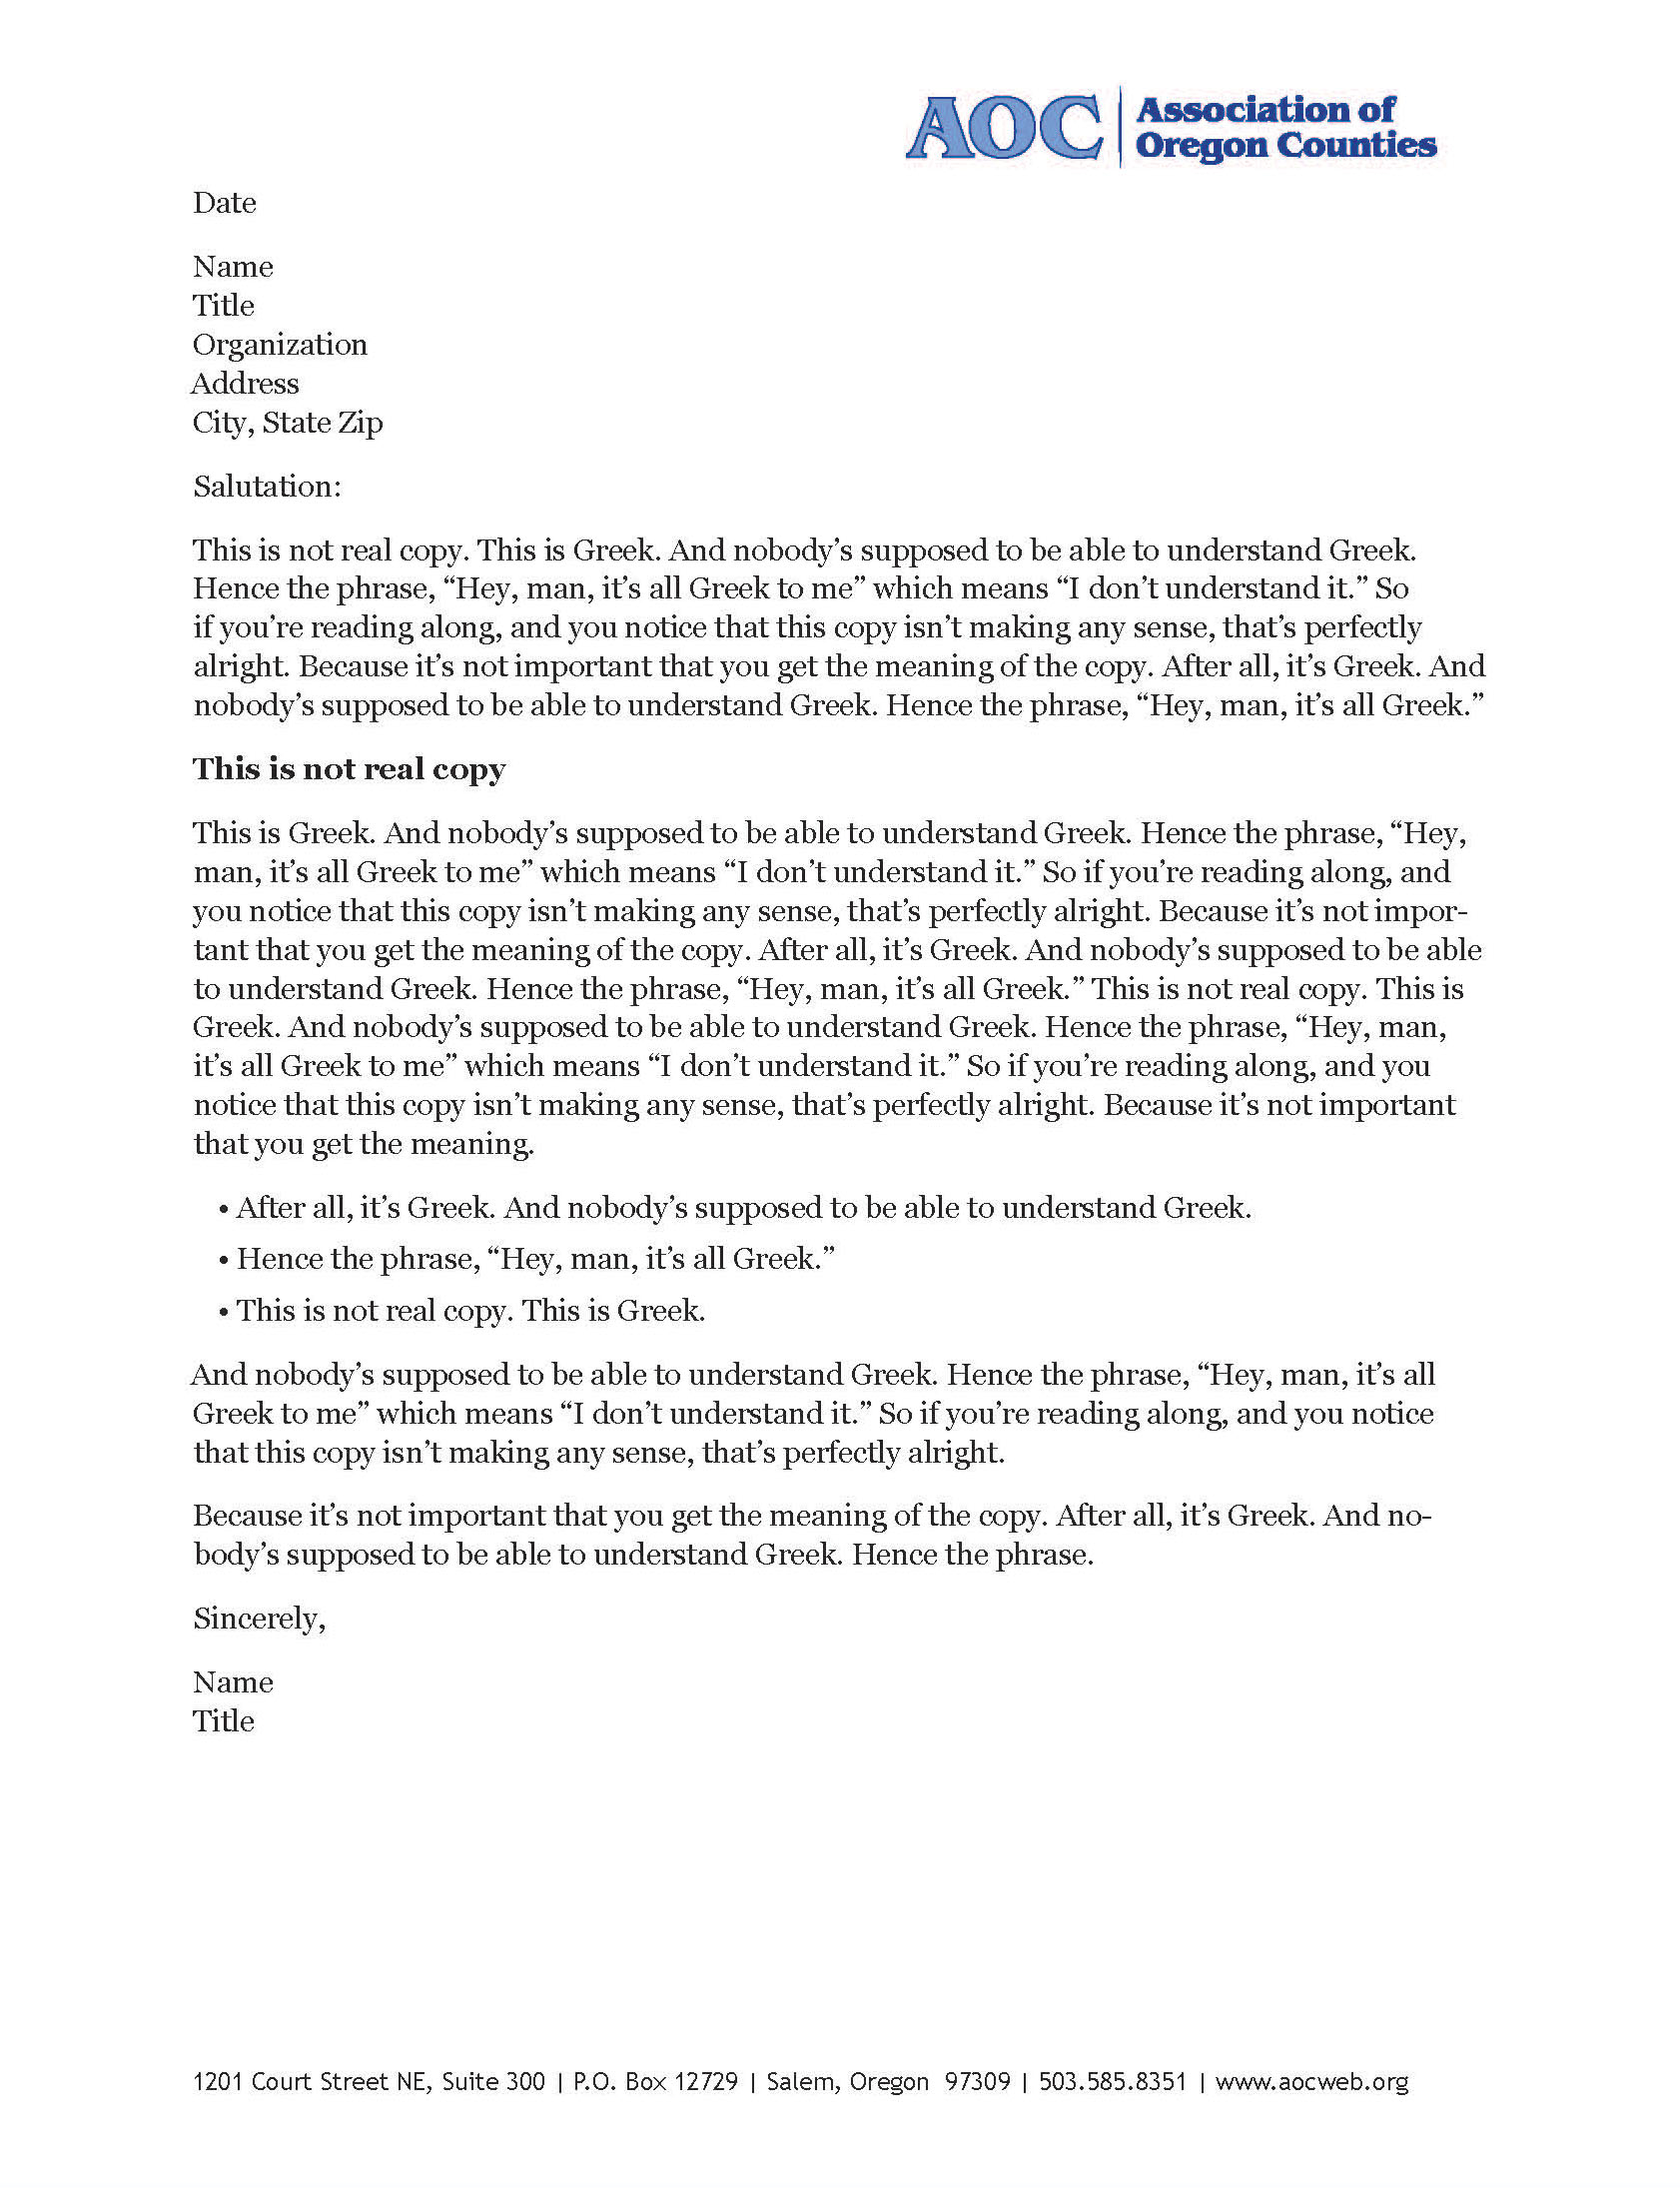 Letterhead templates how to in word optimize my brand first whats included in the letterhead template spiritdancerdesigns